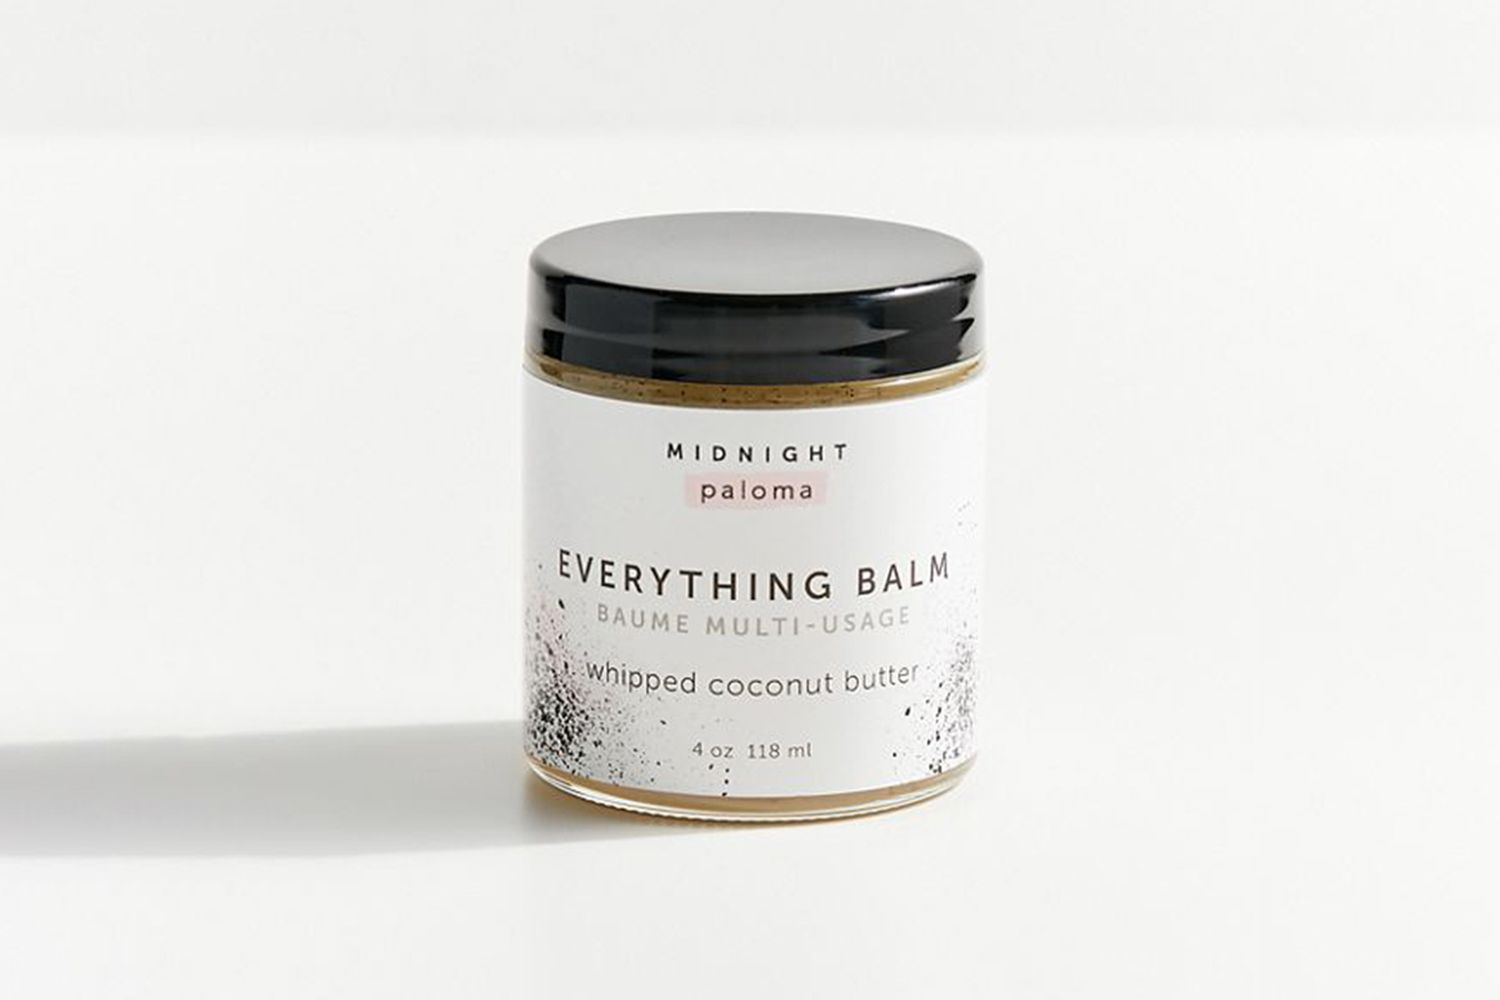 The Everything Balm